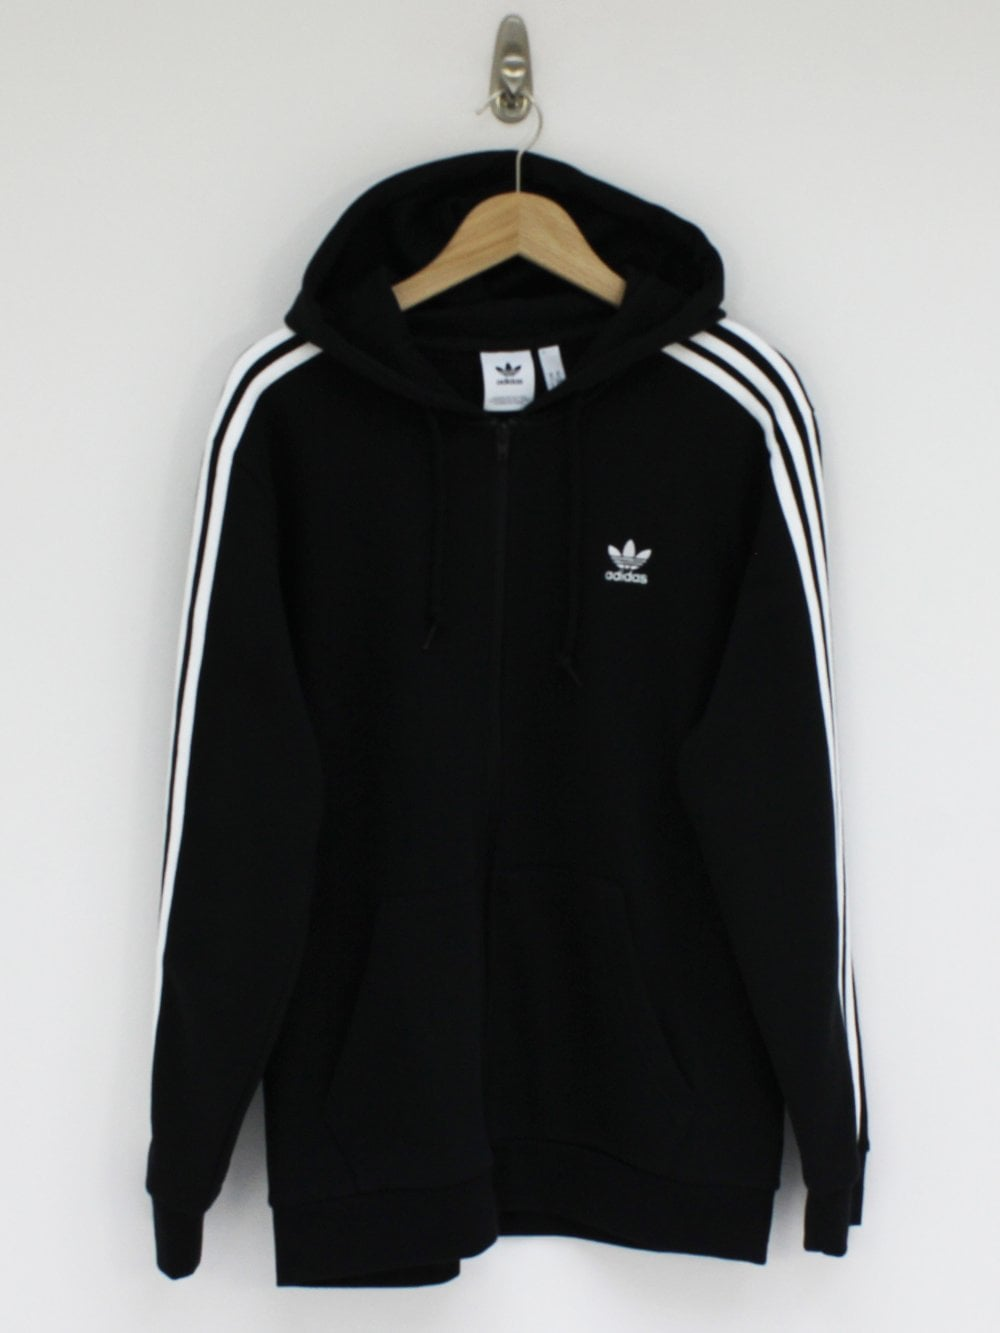 Black 3 Stripes FZ Jacket